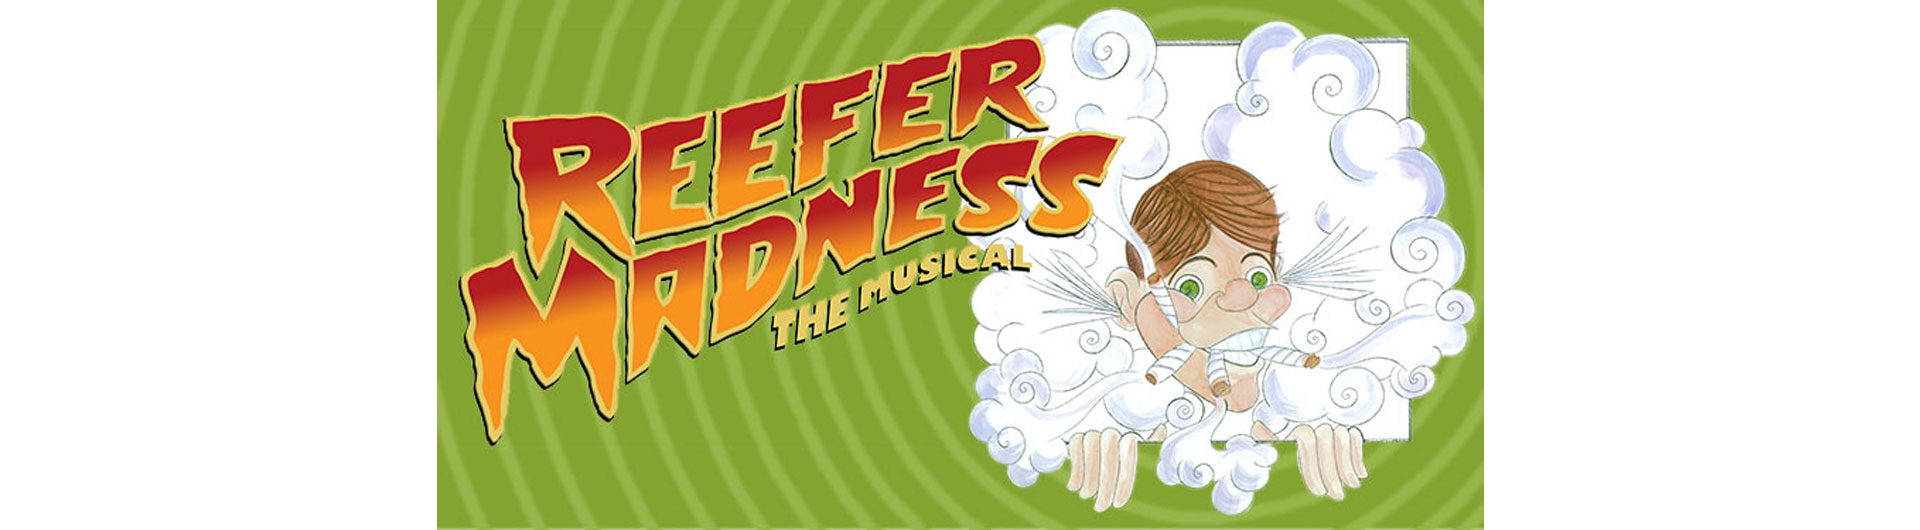 Reefer Madness the Musical